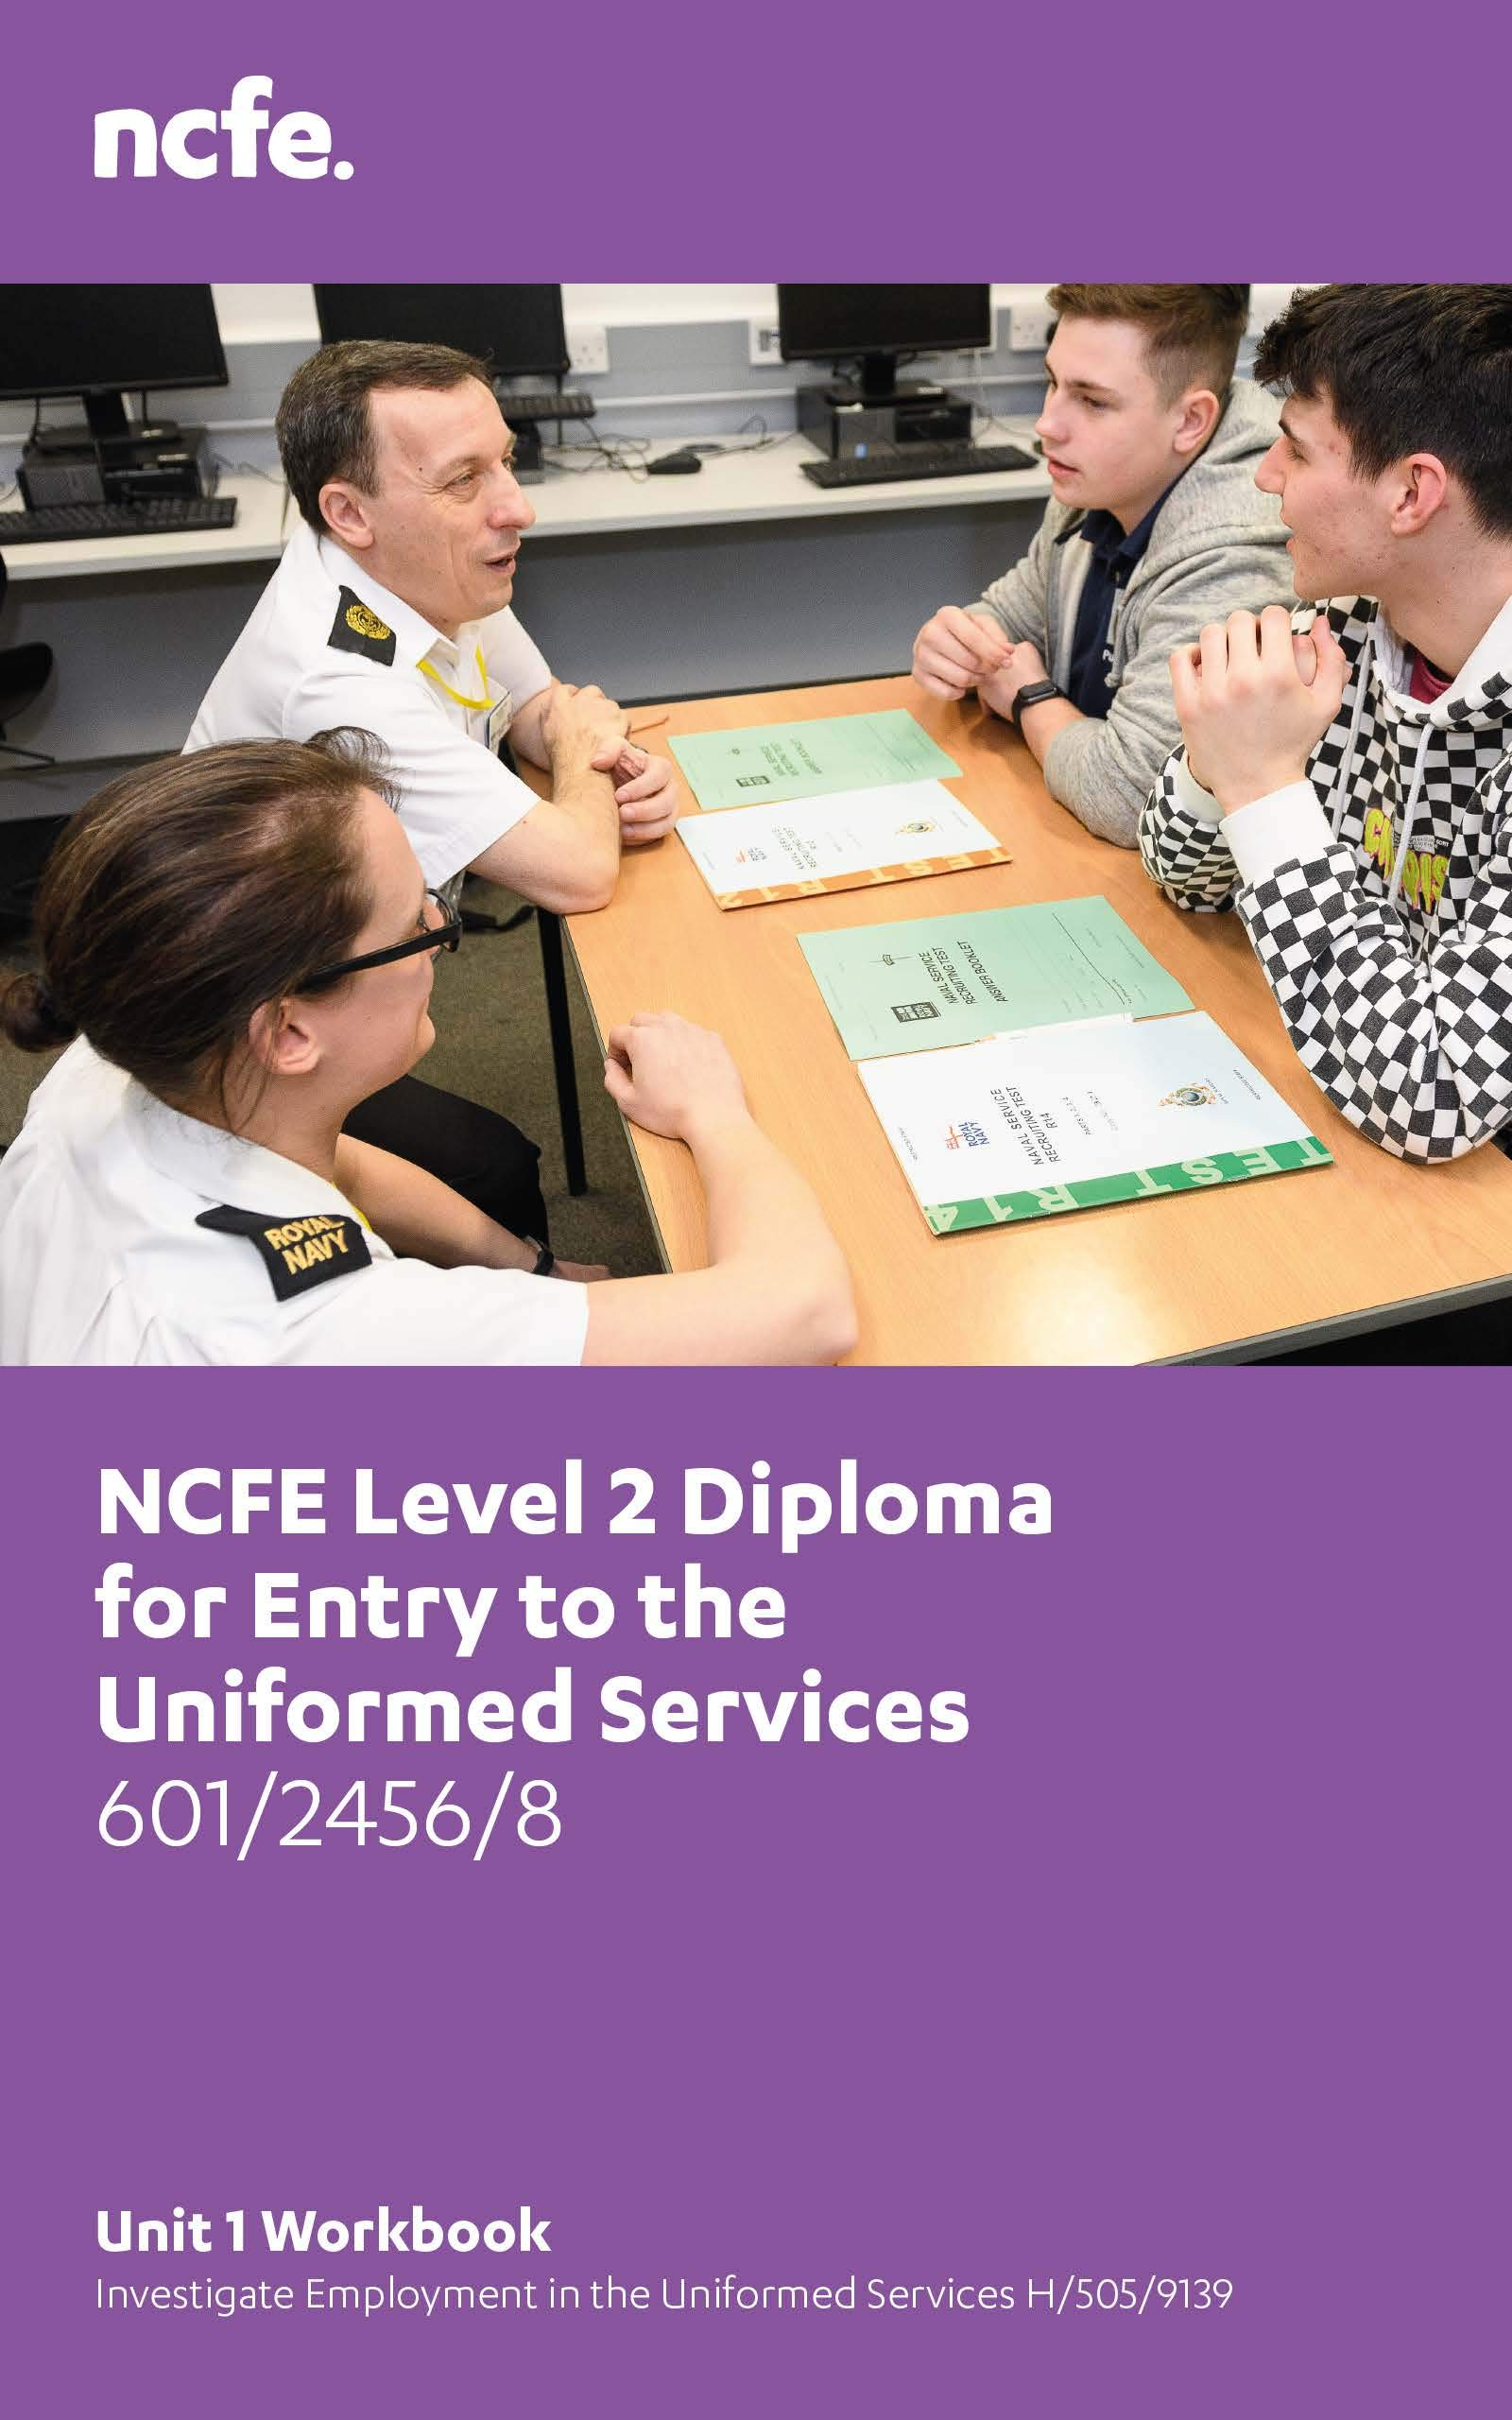 Level 2 Diploma for Entry into the Uniformed Services 601/2456/8: Unit 1 Workbook Investigate employment in the uniformed services